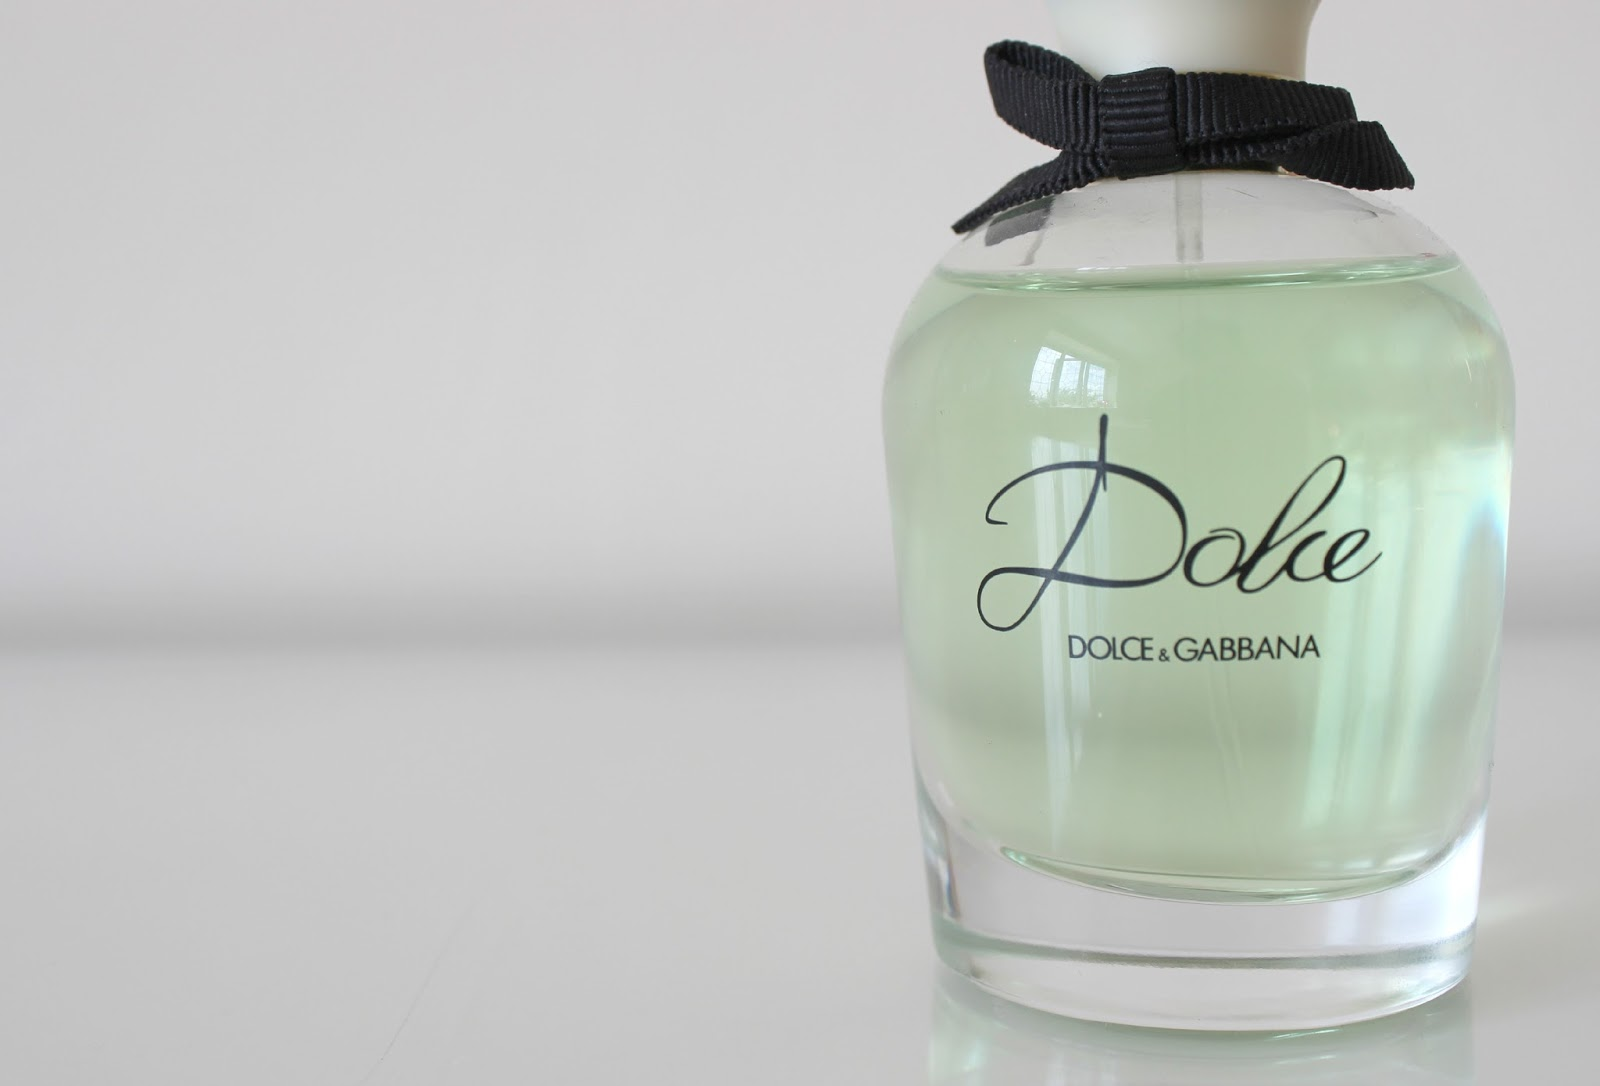 A picture of Dolce by Dolce & Gabbana Eau de Toilette